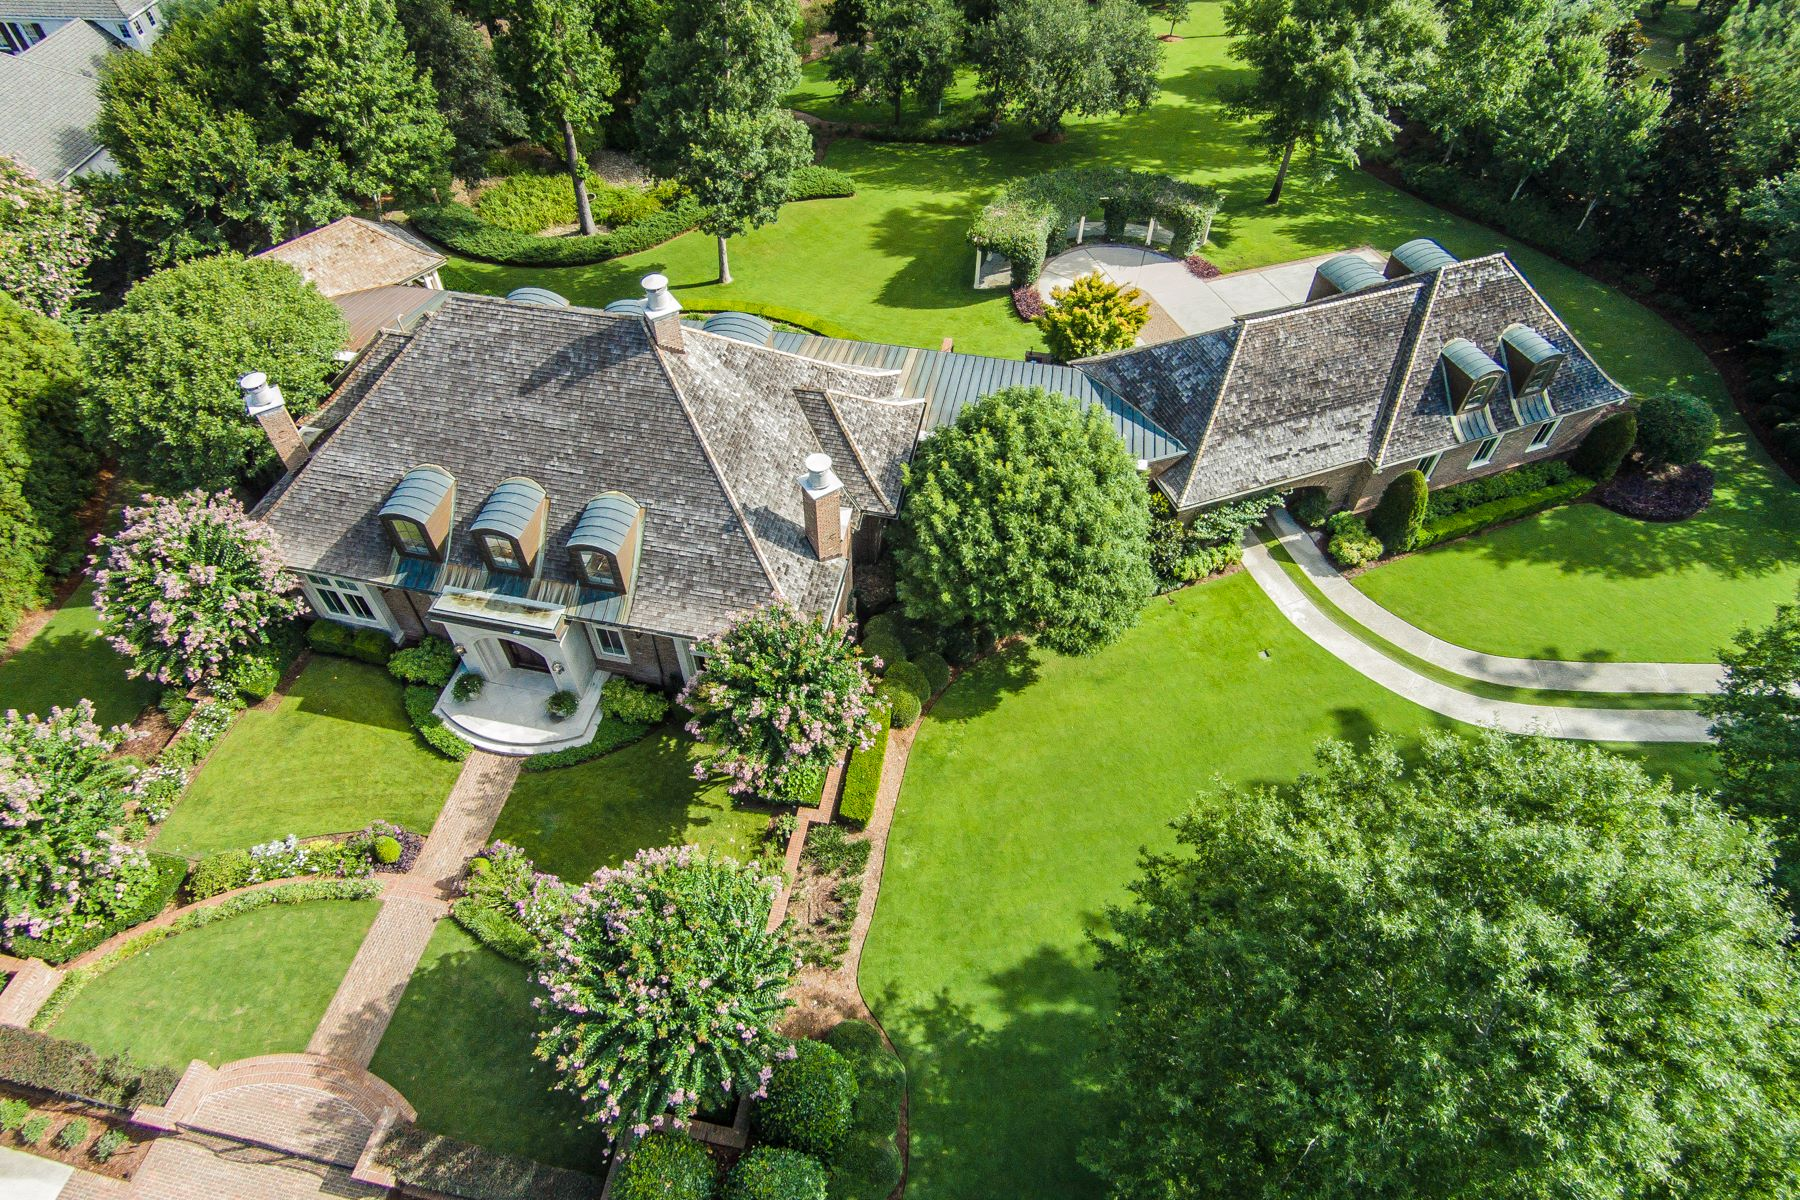 Single Family Home for Sale at Exquisite Details Define This Inspired Waterfront Estate 2001 Balmoral Place Wilmington, North Carolina 28405 United States